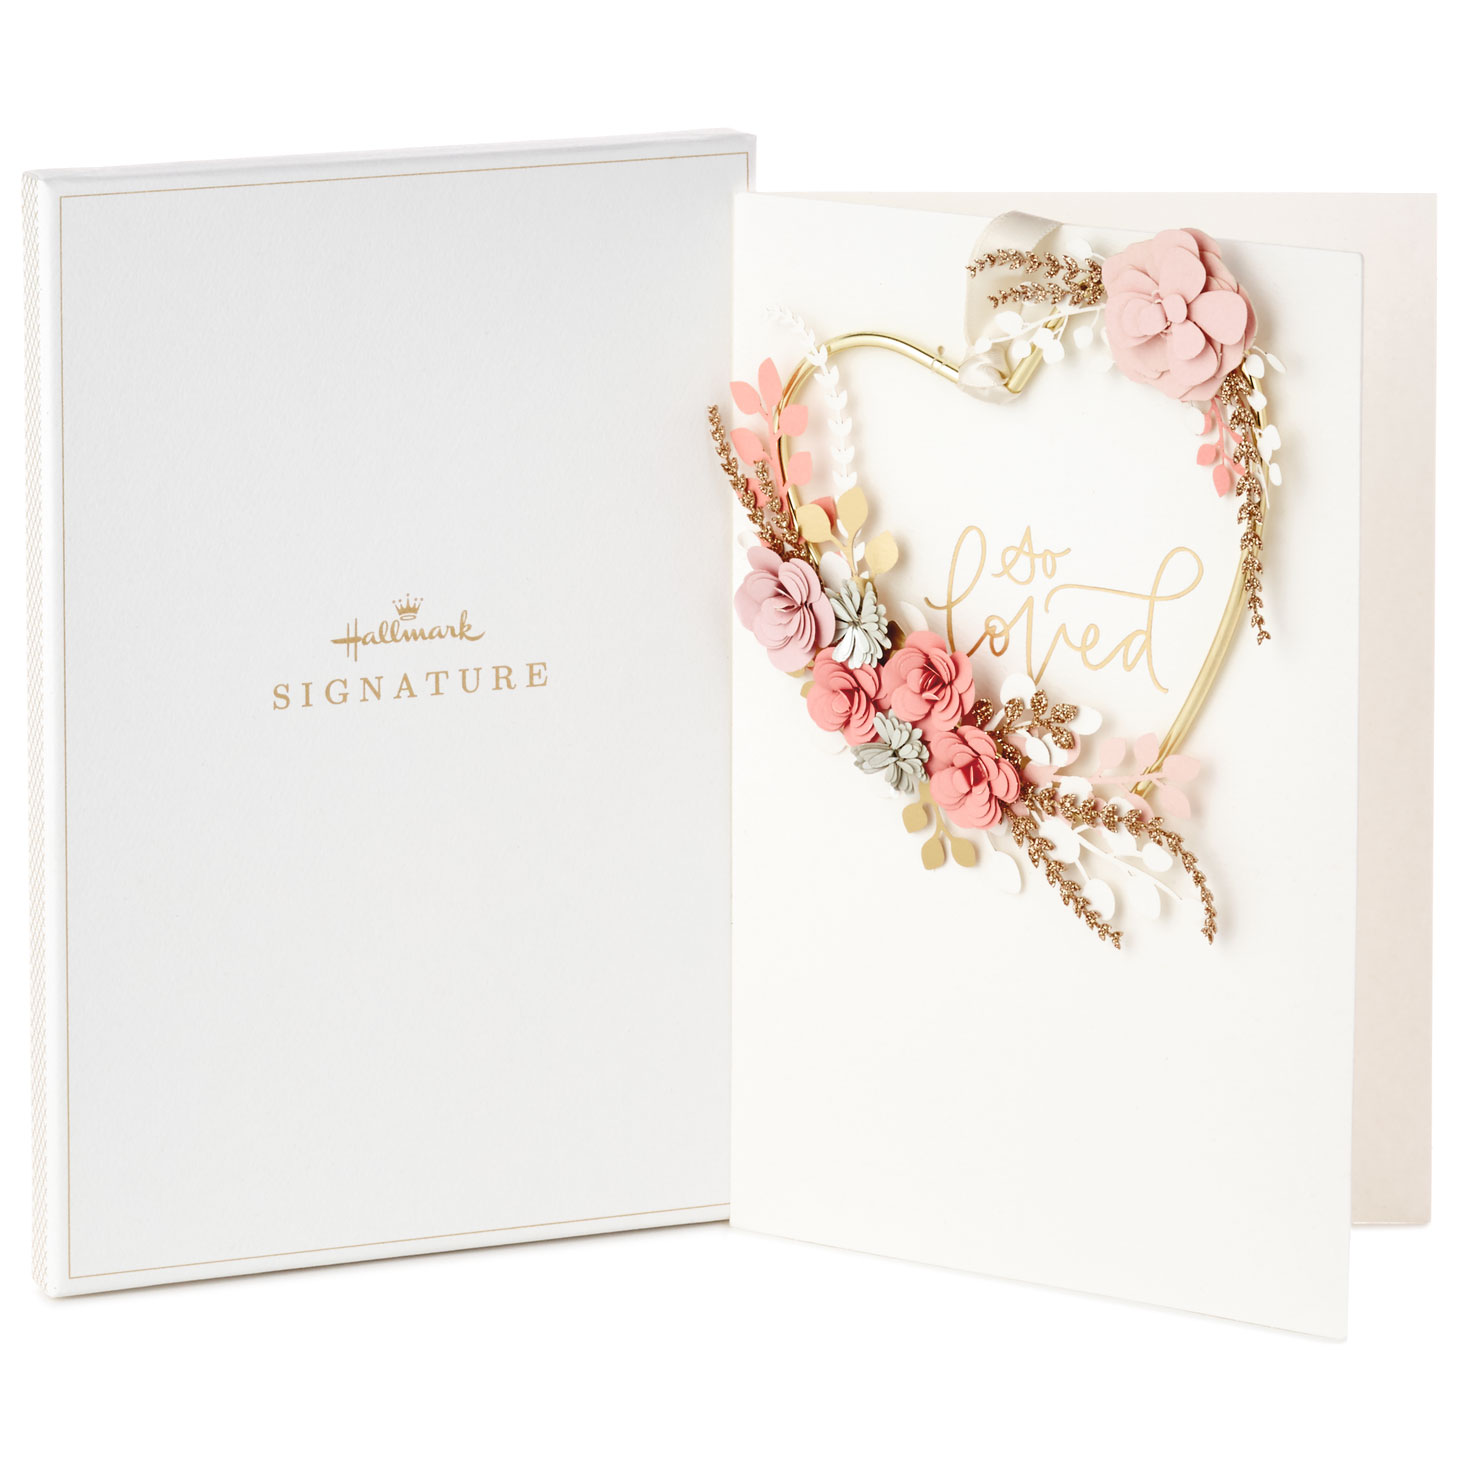 Forever Love Card With Removable Wreath in Gift Box